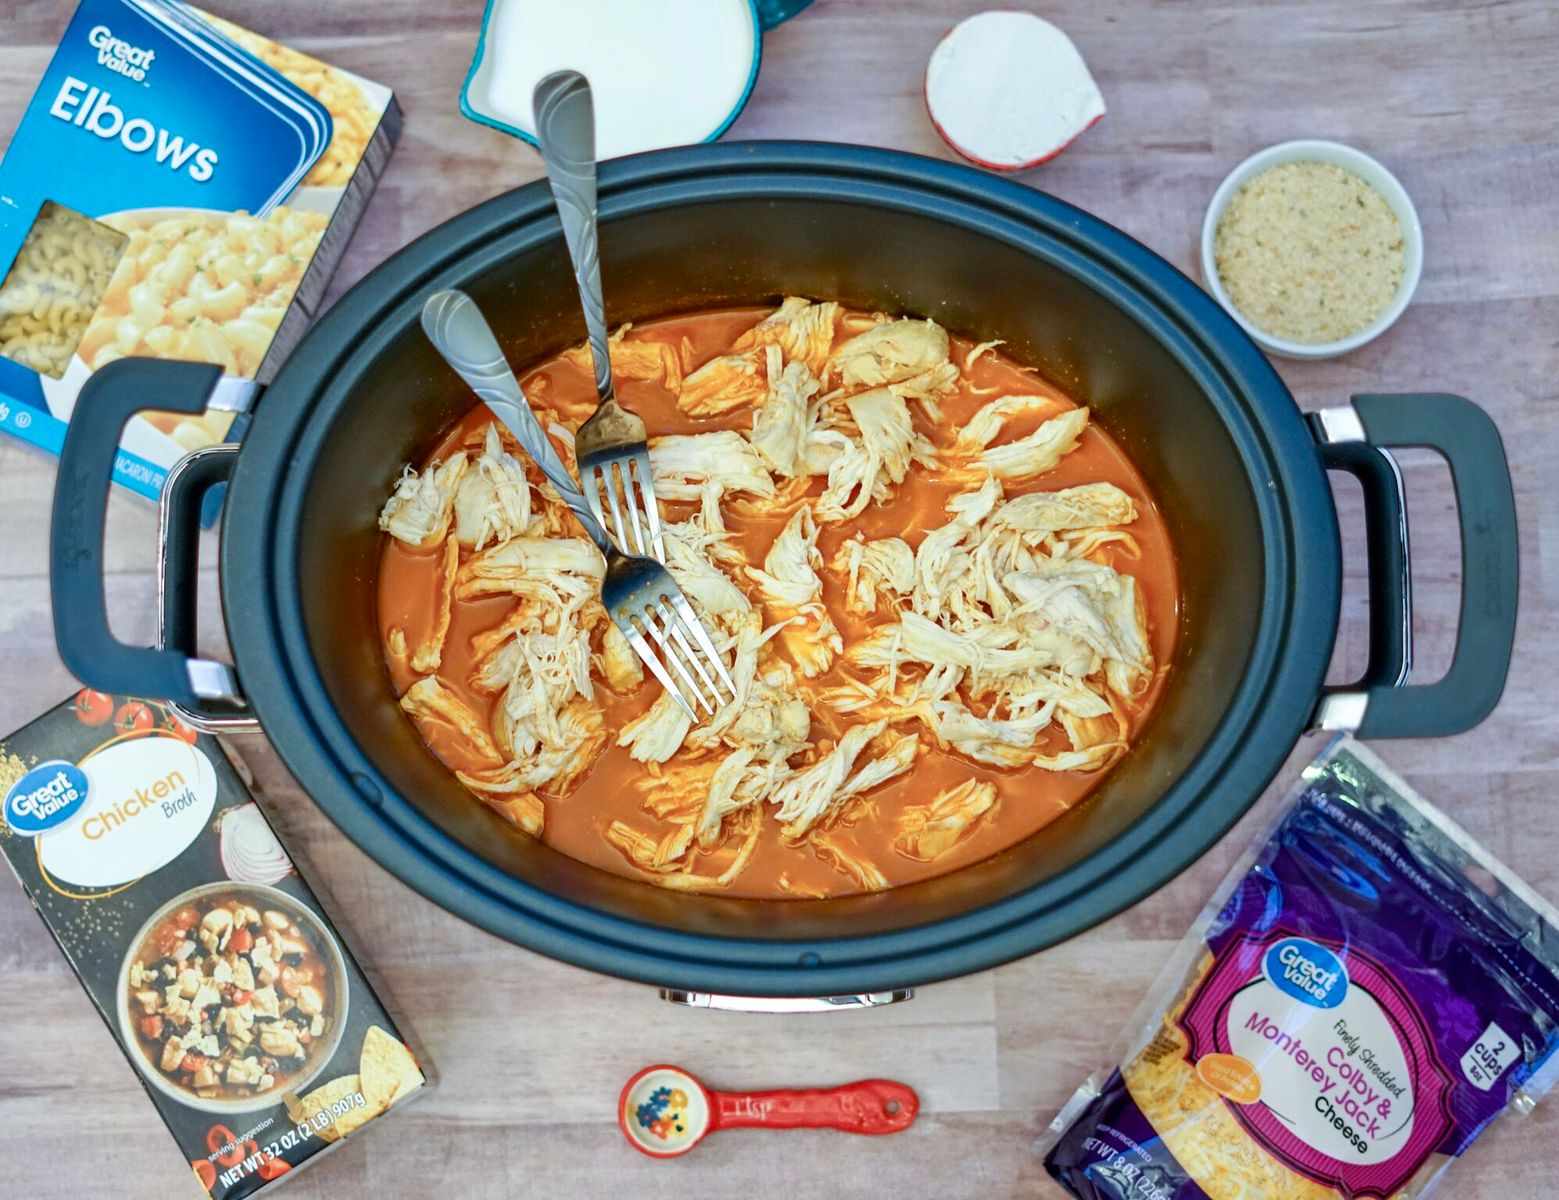 This Slow Cooker Buffalo Mac & Cheese recipe is the perfect addition to your game day menu! It's delicious, easy to make and will surely be a big hit!